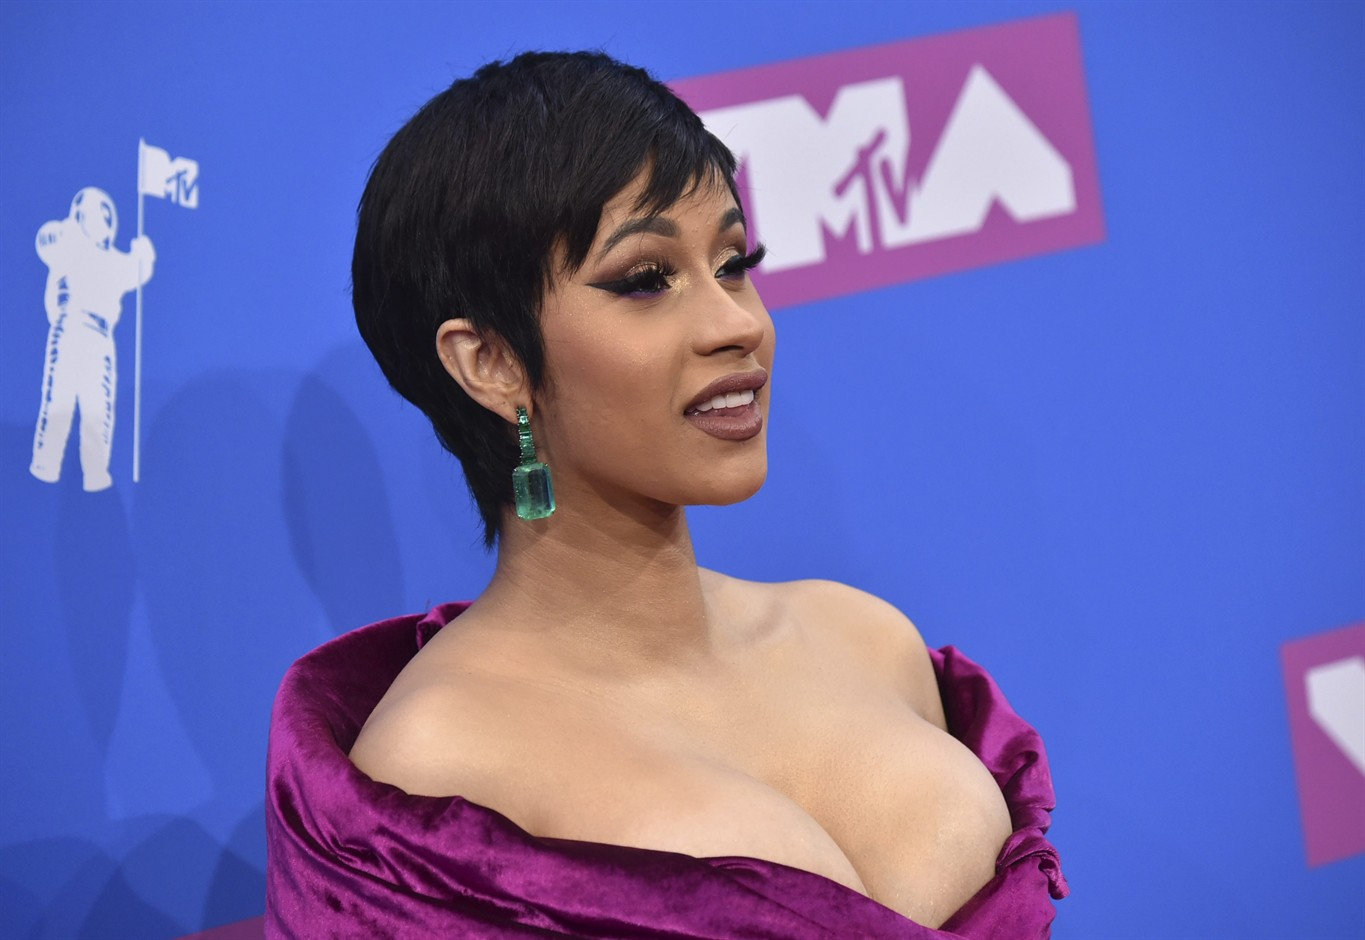 Cardi B Real: Cardi B Sorry For 'Real Housewives' Of Civil Rights Parody